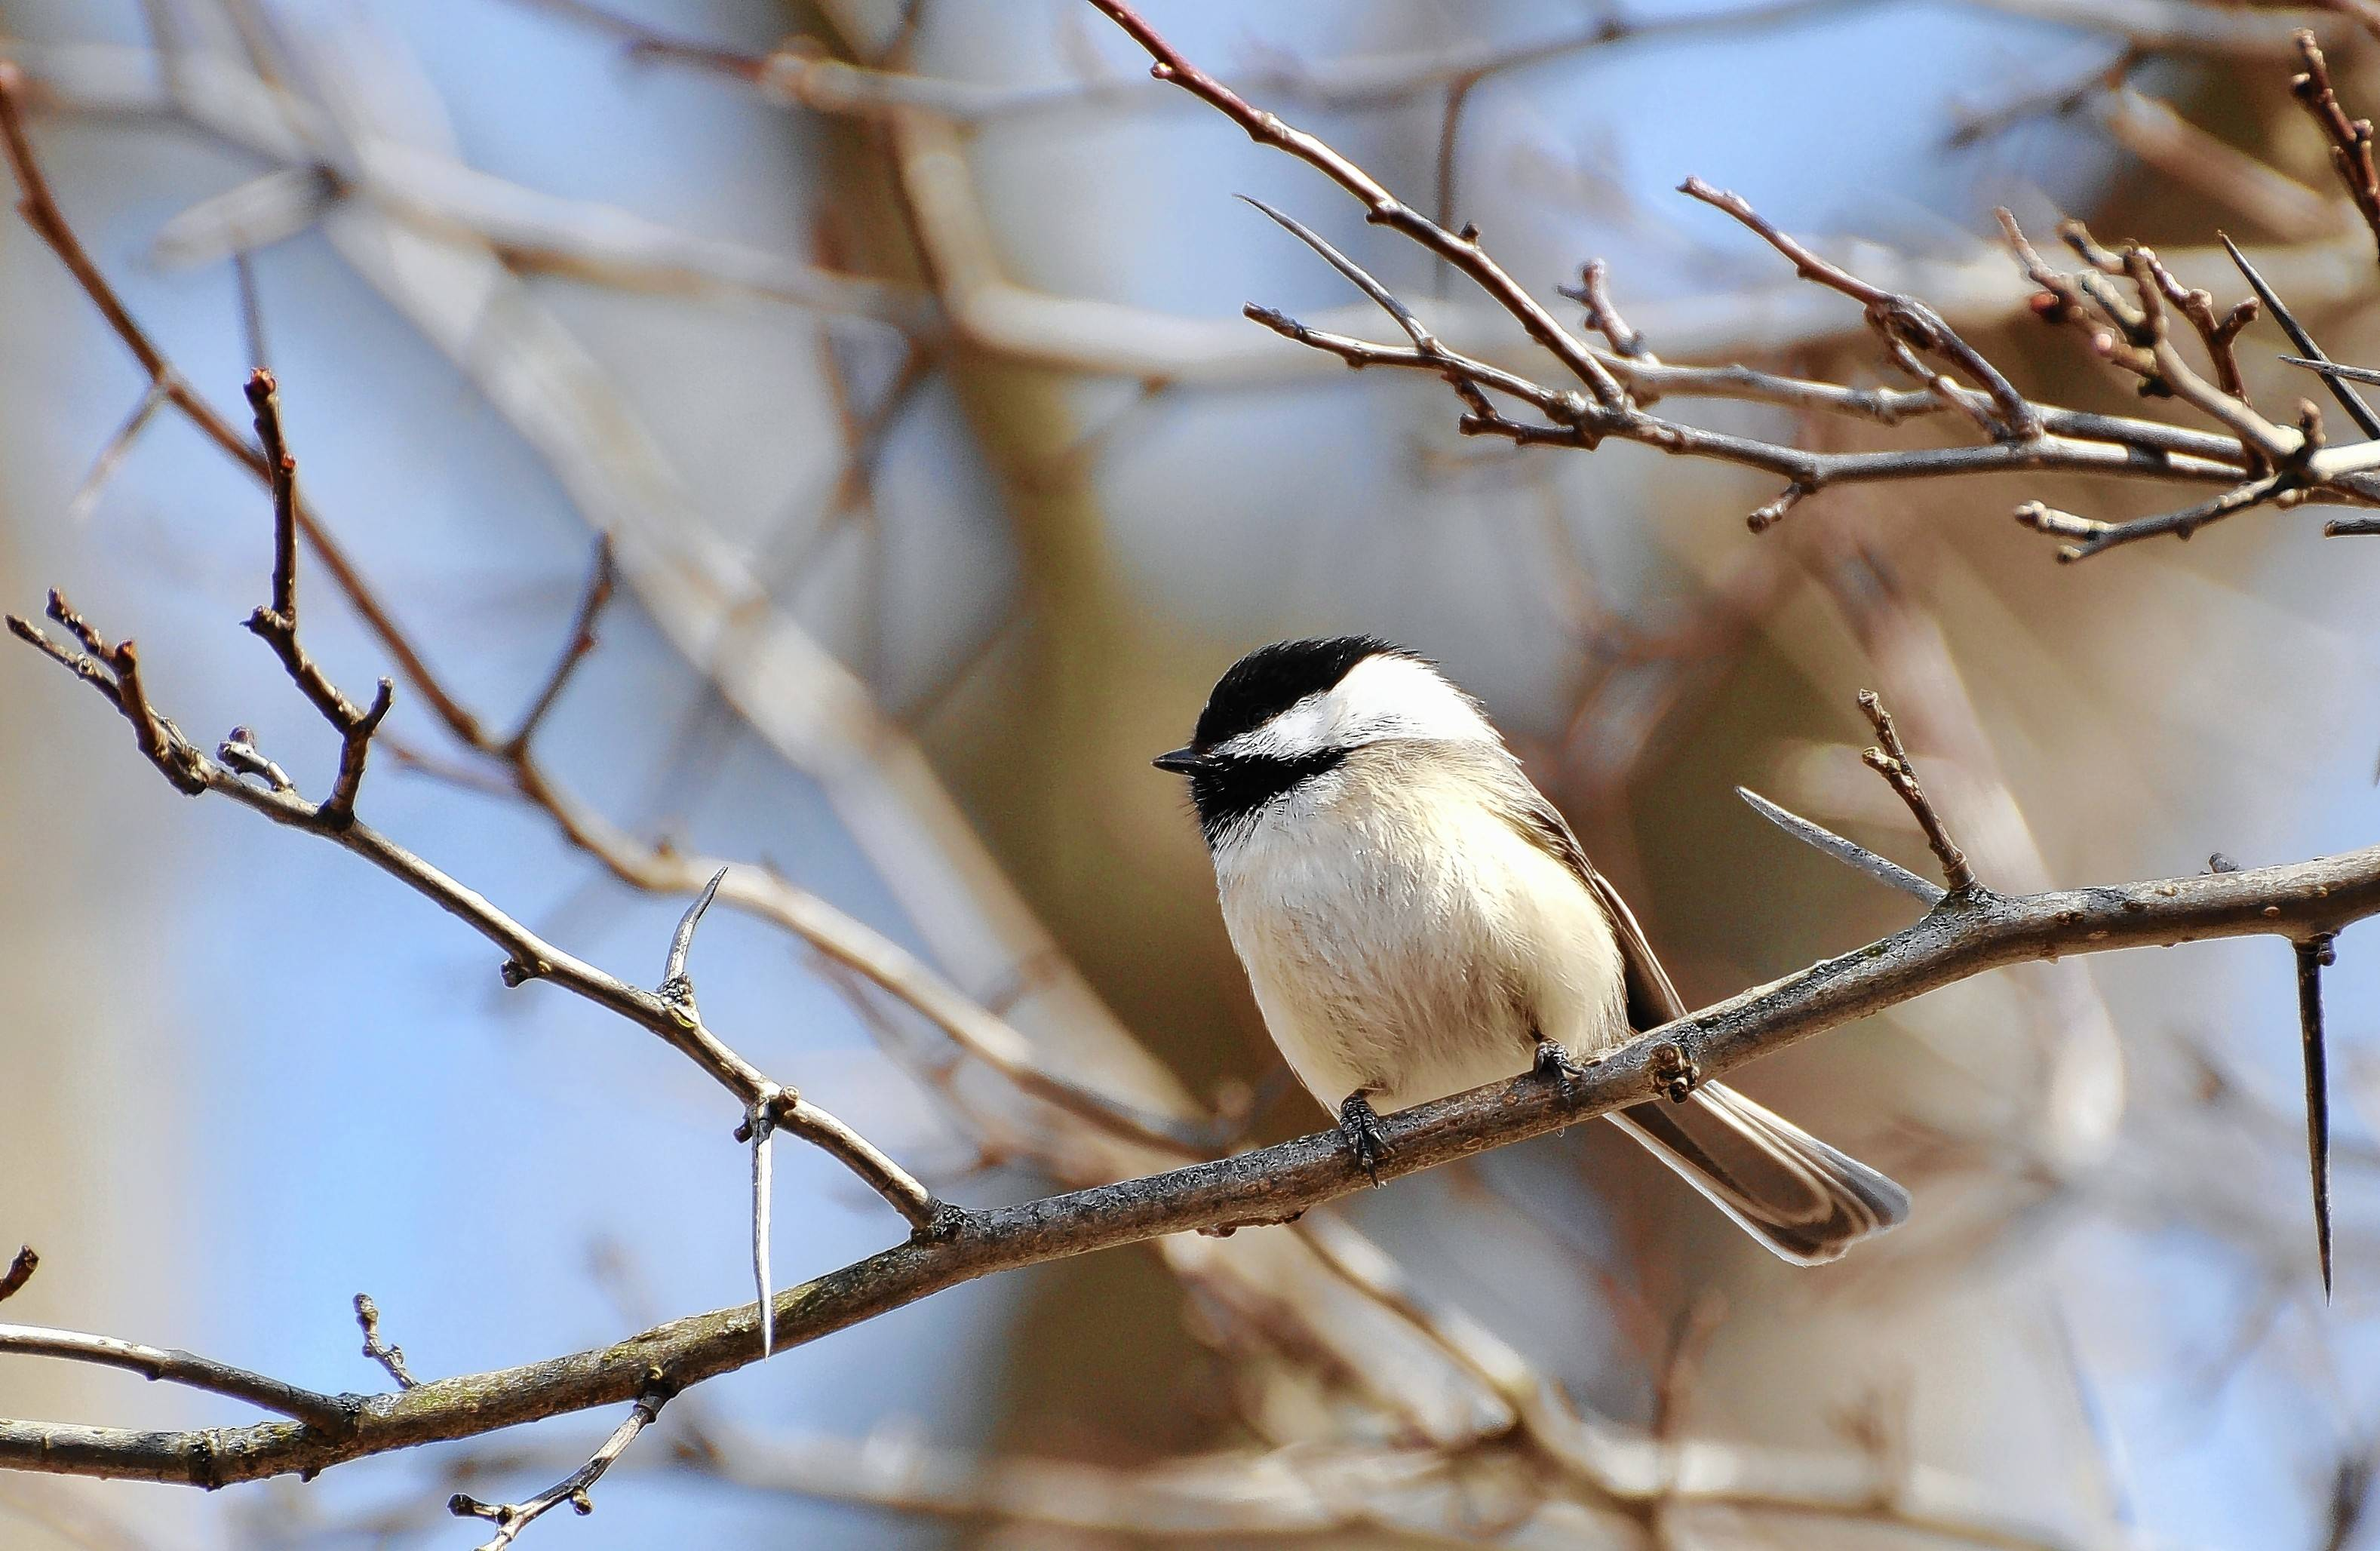 The black-capped chickadee, a backyard favorite, may one day be uncommon in the Chicago region. Climate change is expected to shift the bird's geographic range northward.